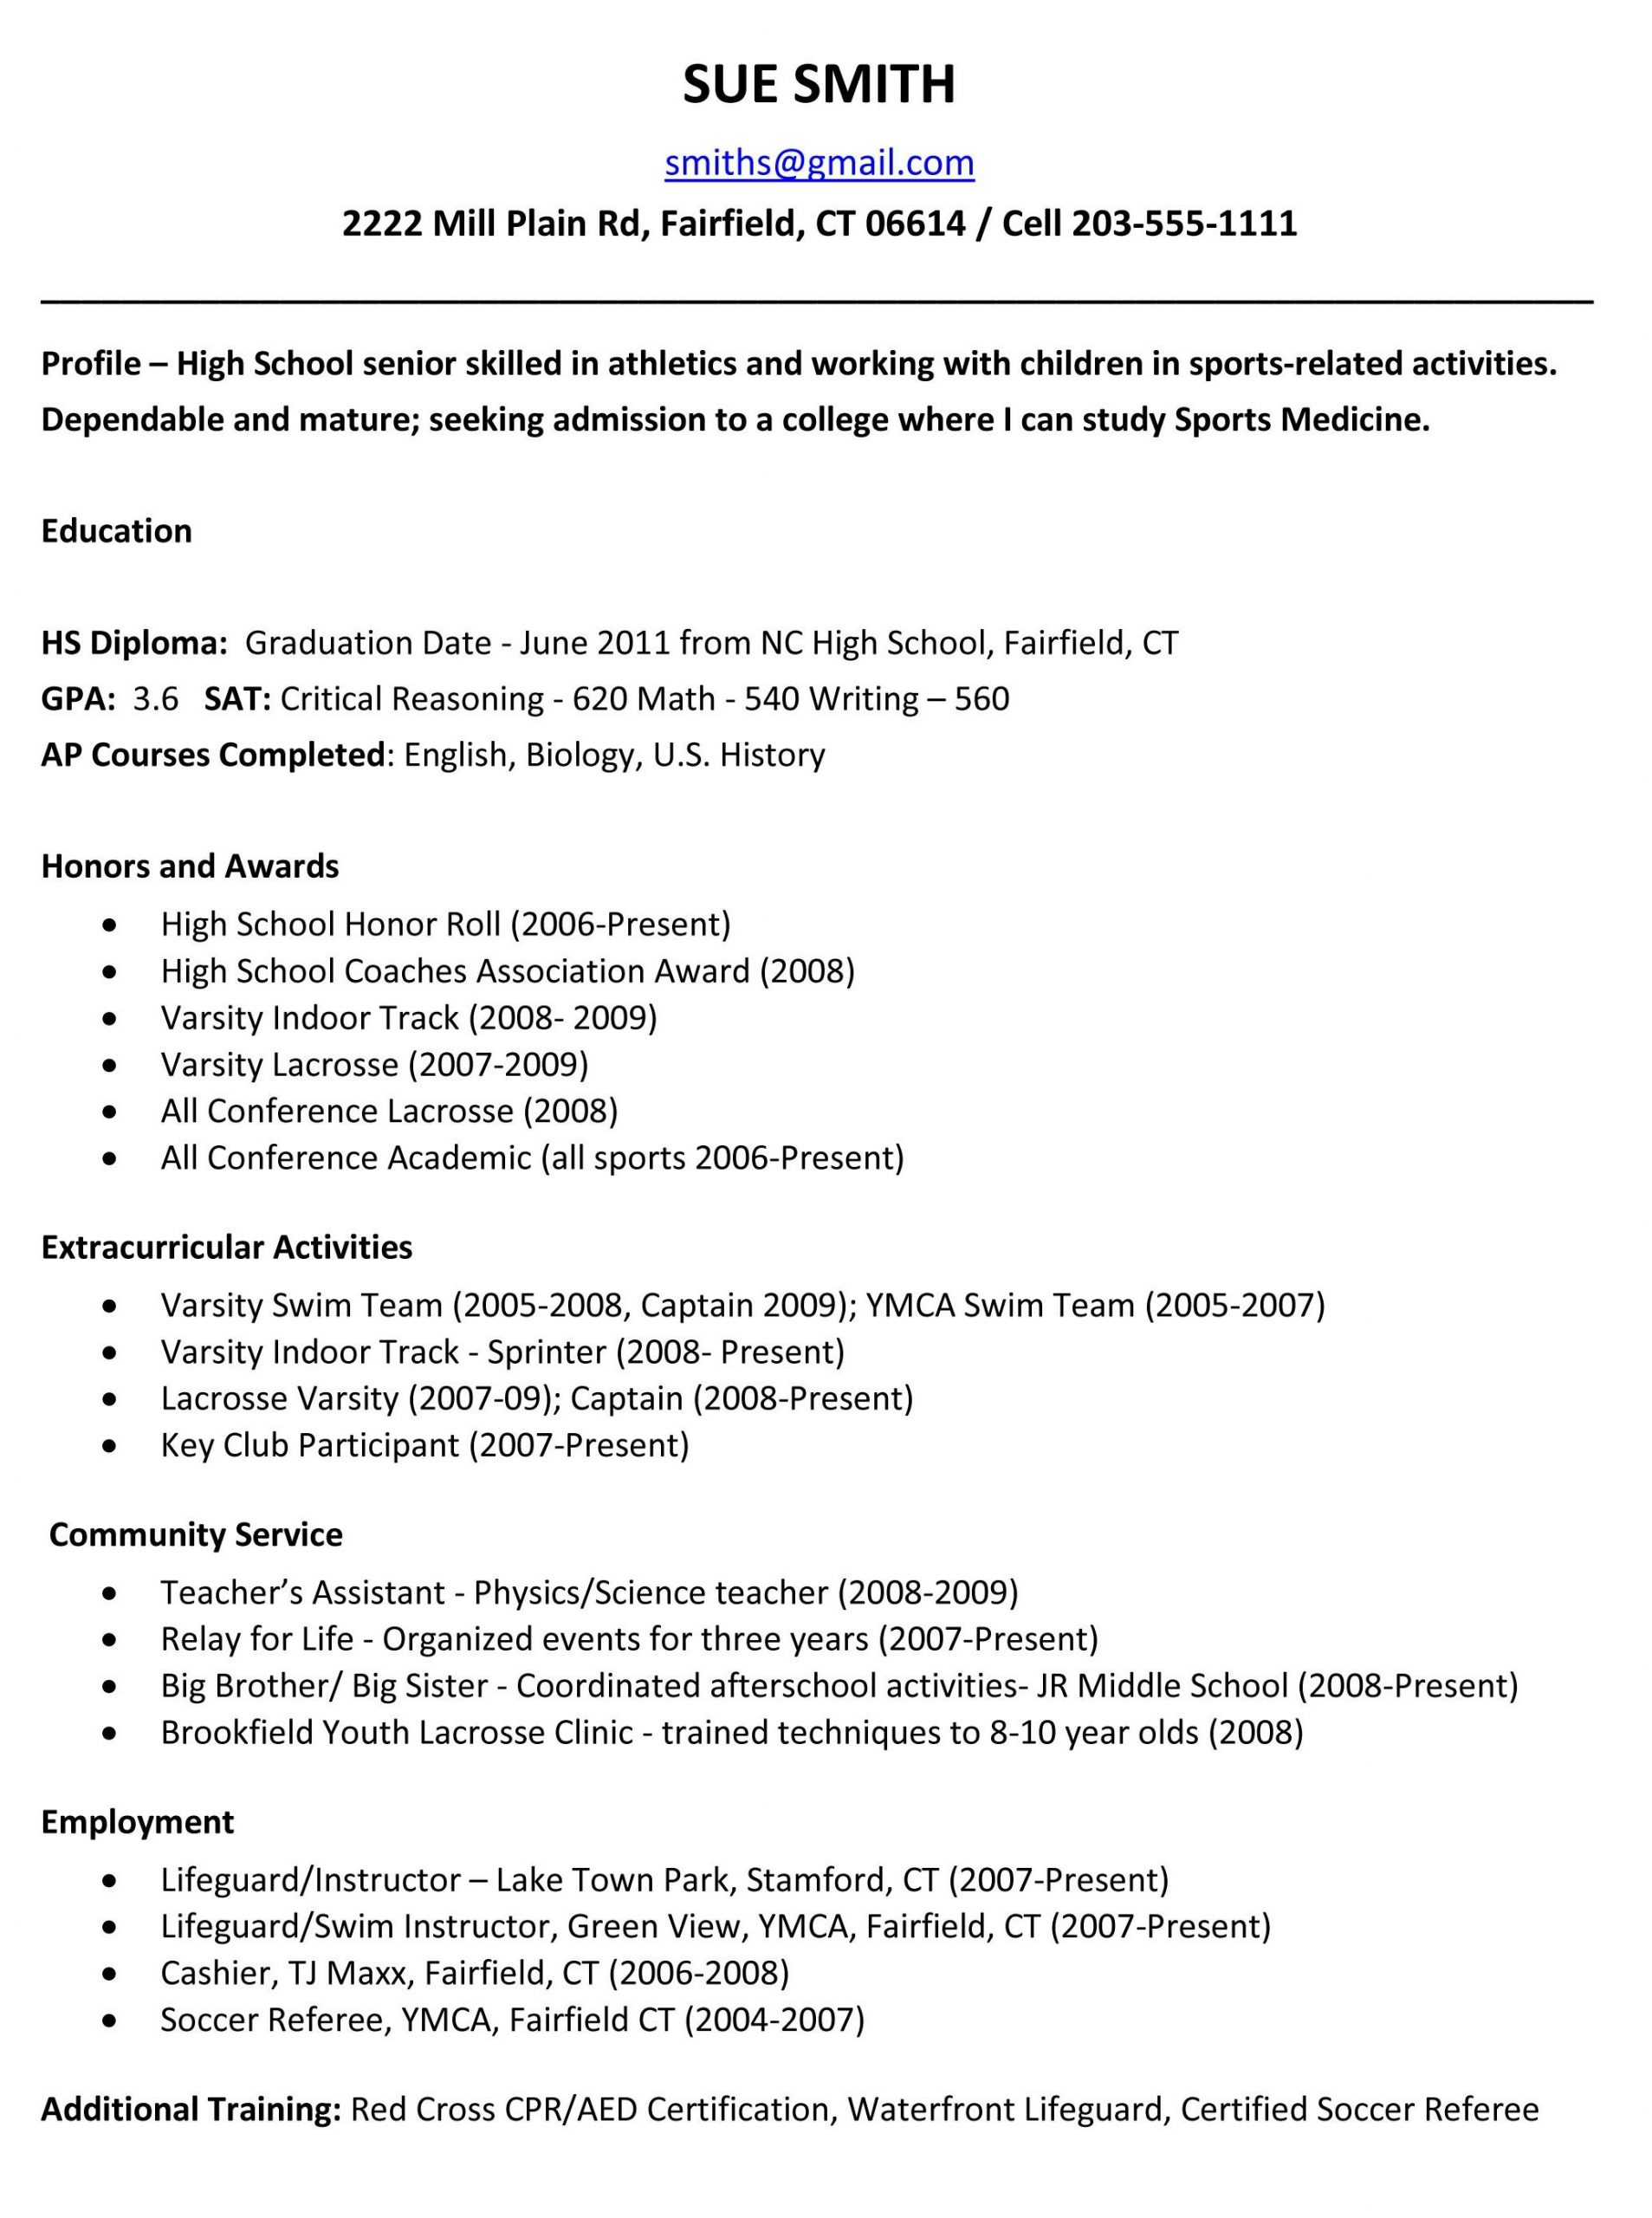 Example Of Student Resume for College Application Of Example Resume for High School Students for College Applications School Resume Templateregularmidwesterners